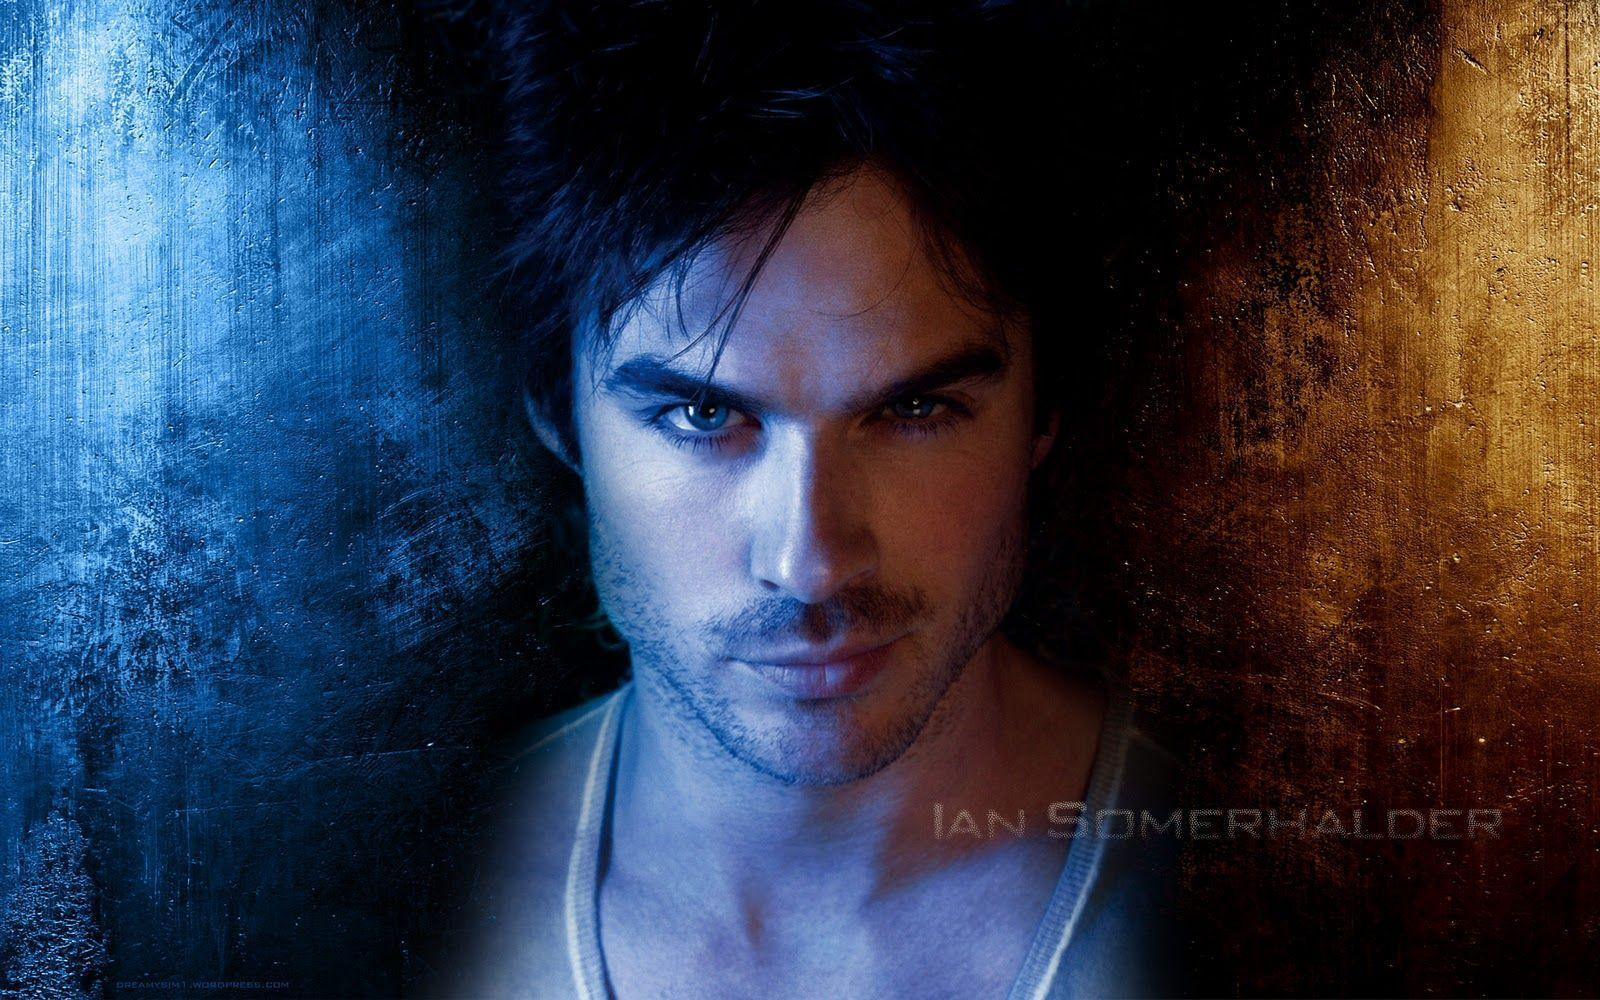 ian somerhalder damon vampire - photo #30